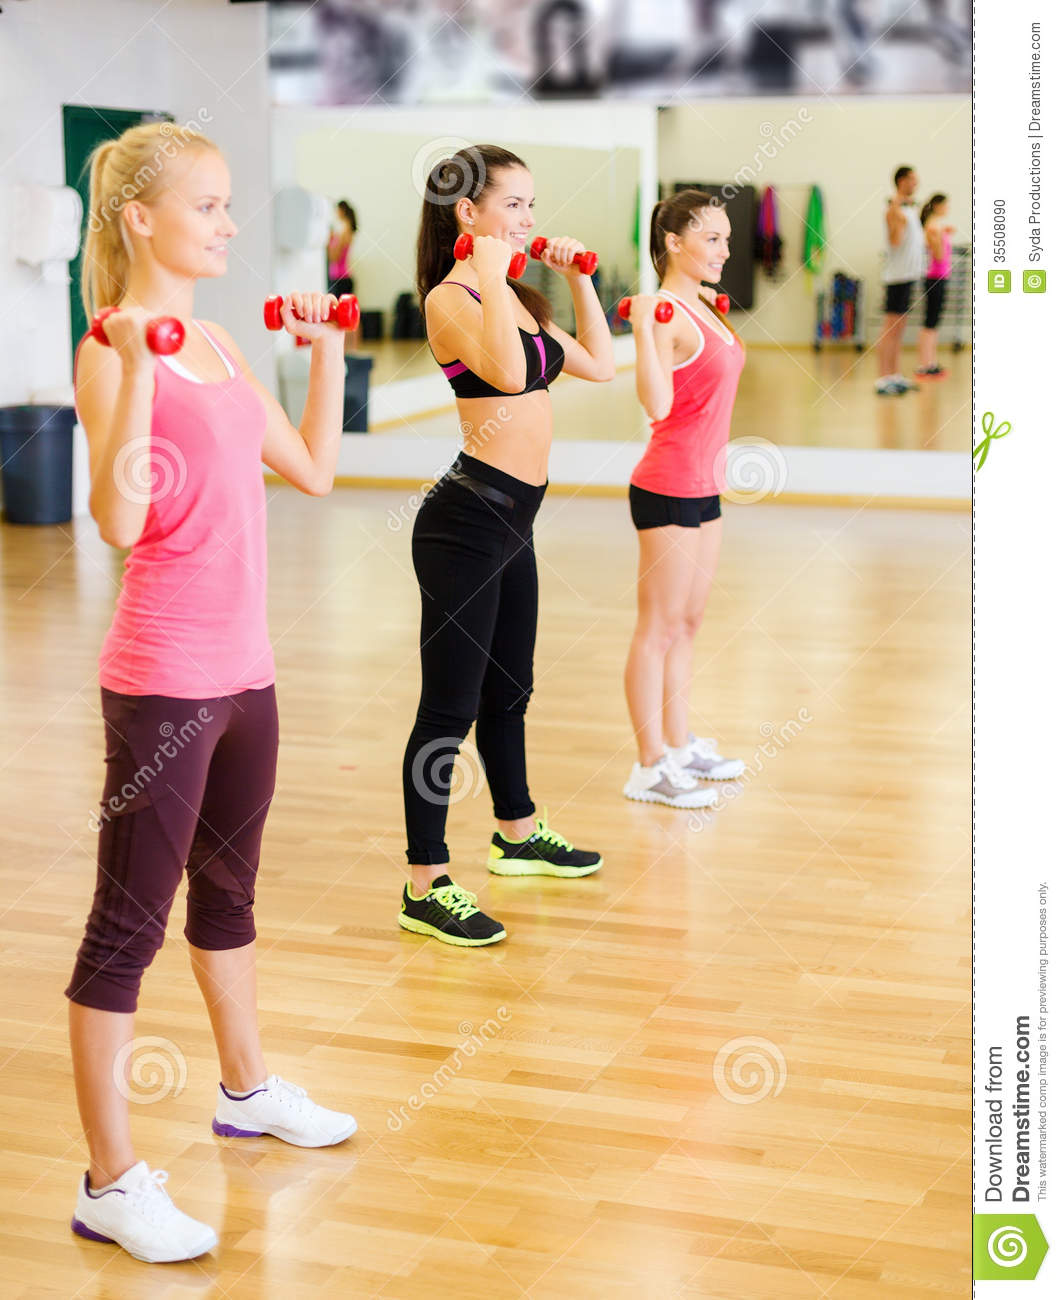 Working Out: Group Of Smiling People Working Out With Dumbbells Stock